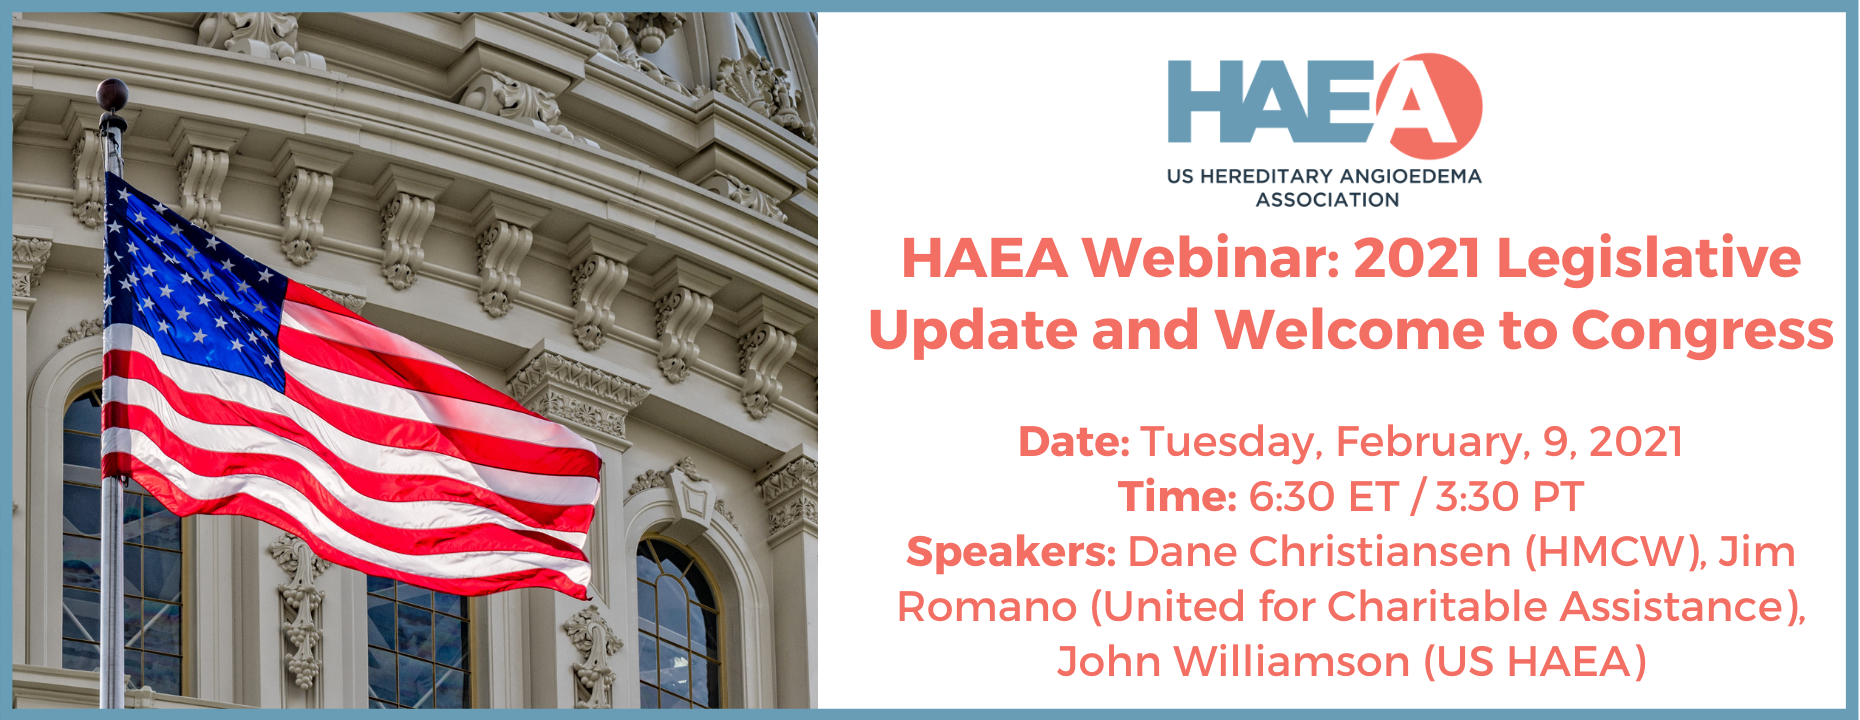 2021 HAEA Legislative Grassroots Advocacy: Join in to protect the rights of people with HAE